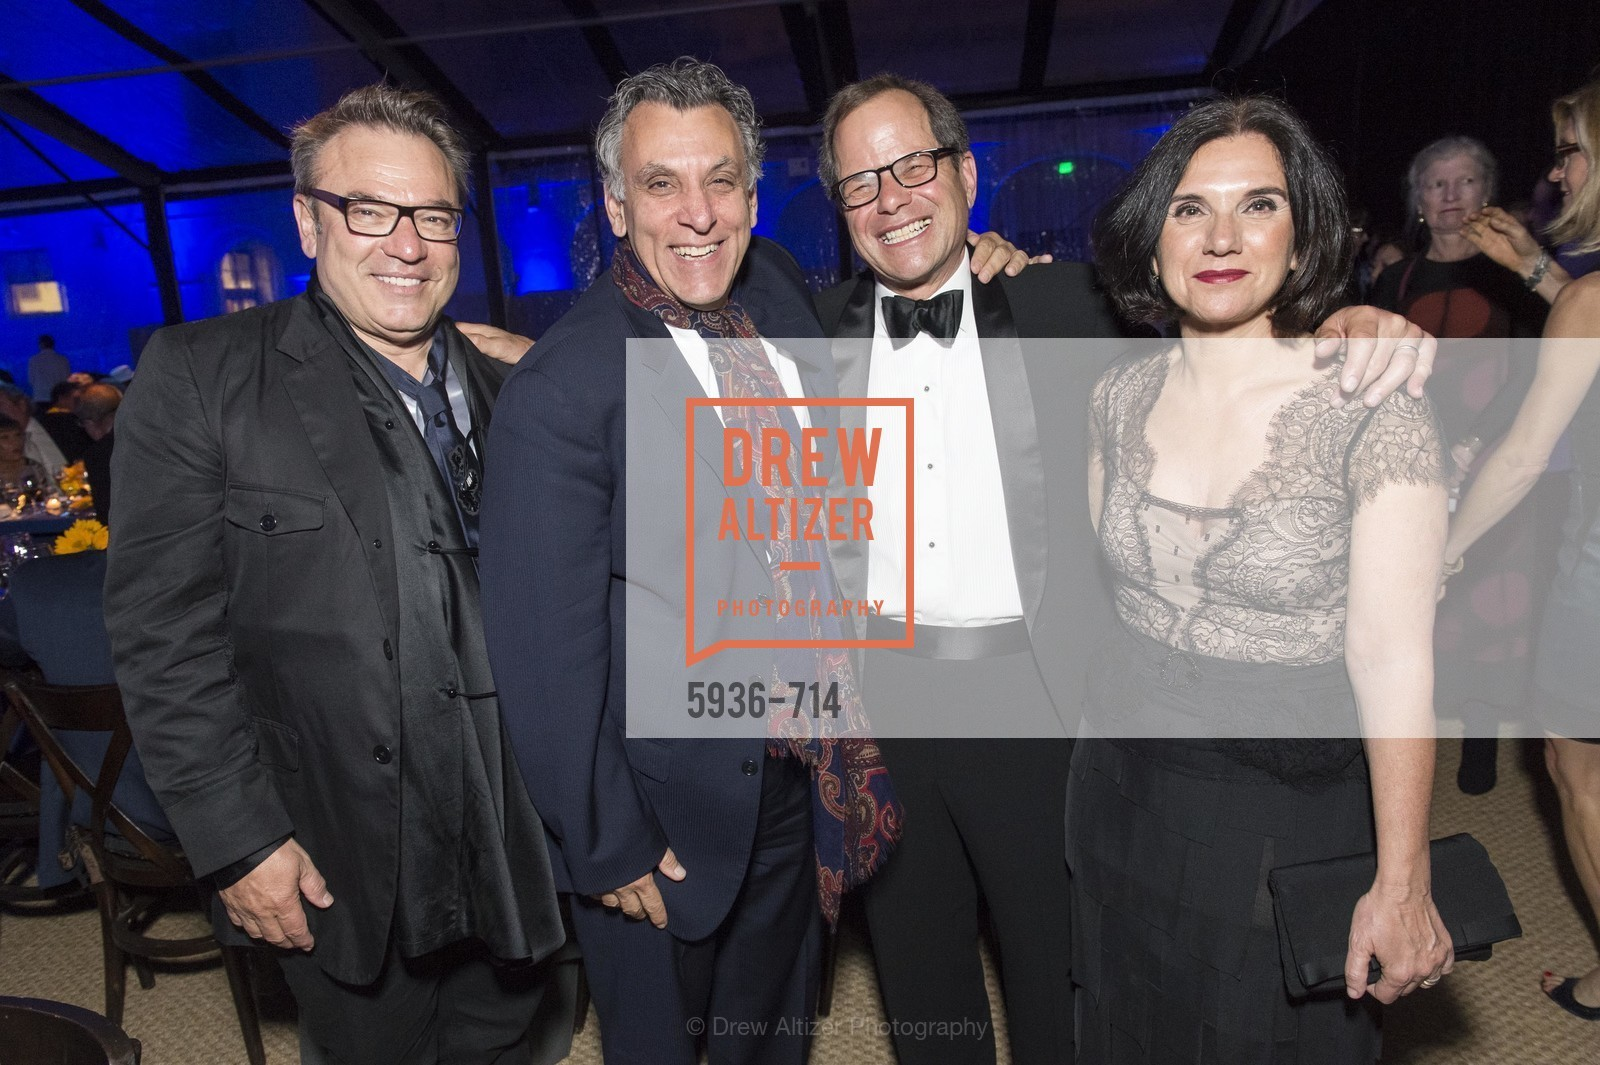 Stanlee Gatti, Jeff Levenson, Randall Kline, Teresa Pantaleo, SFJAZZ Gala 2015 Honors Joni Mitchell with Lifetime Achievement Award, US, May 8th, 2015,Drew Altizer, Drew Altizer Photography, full-service agency, private events, San Francisco photographer, photographer california